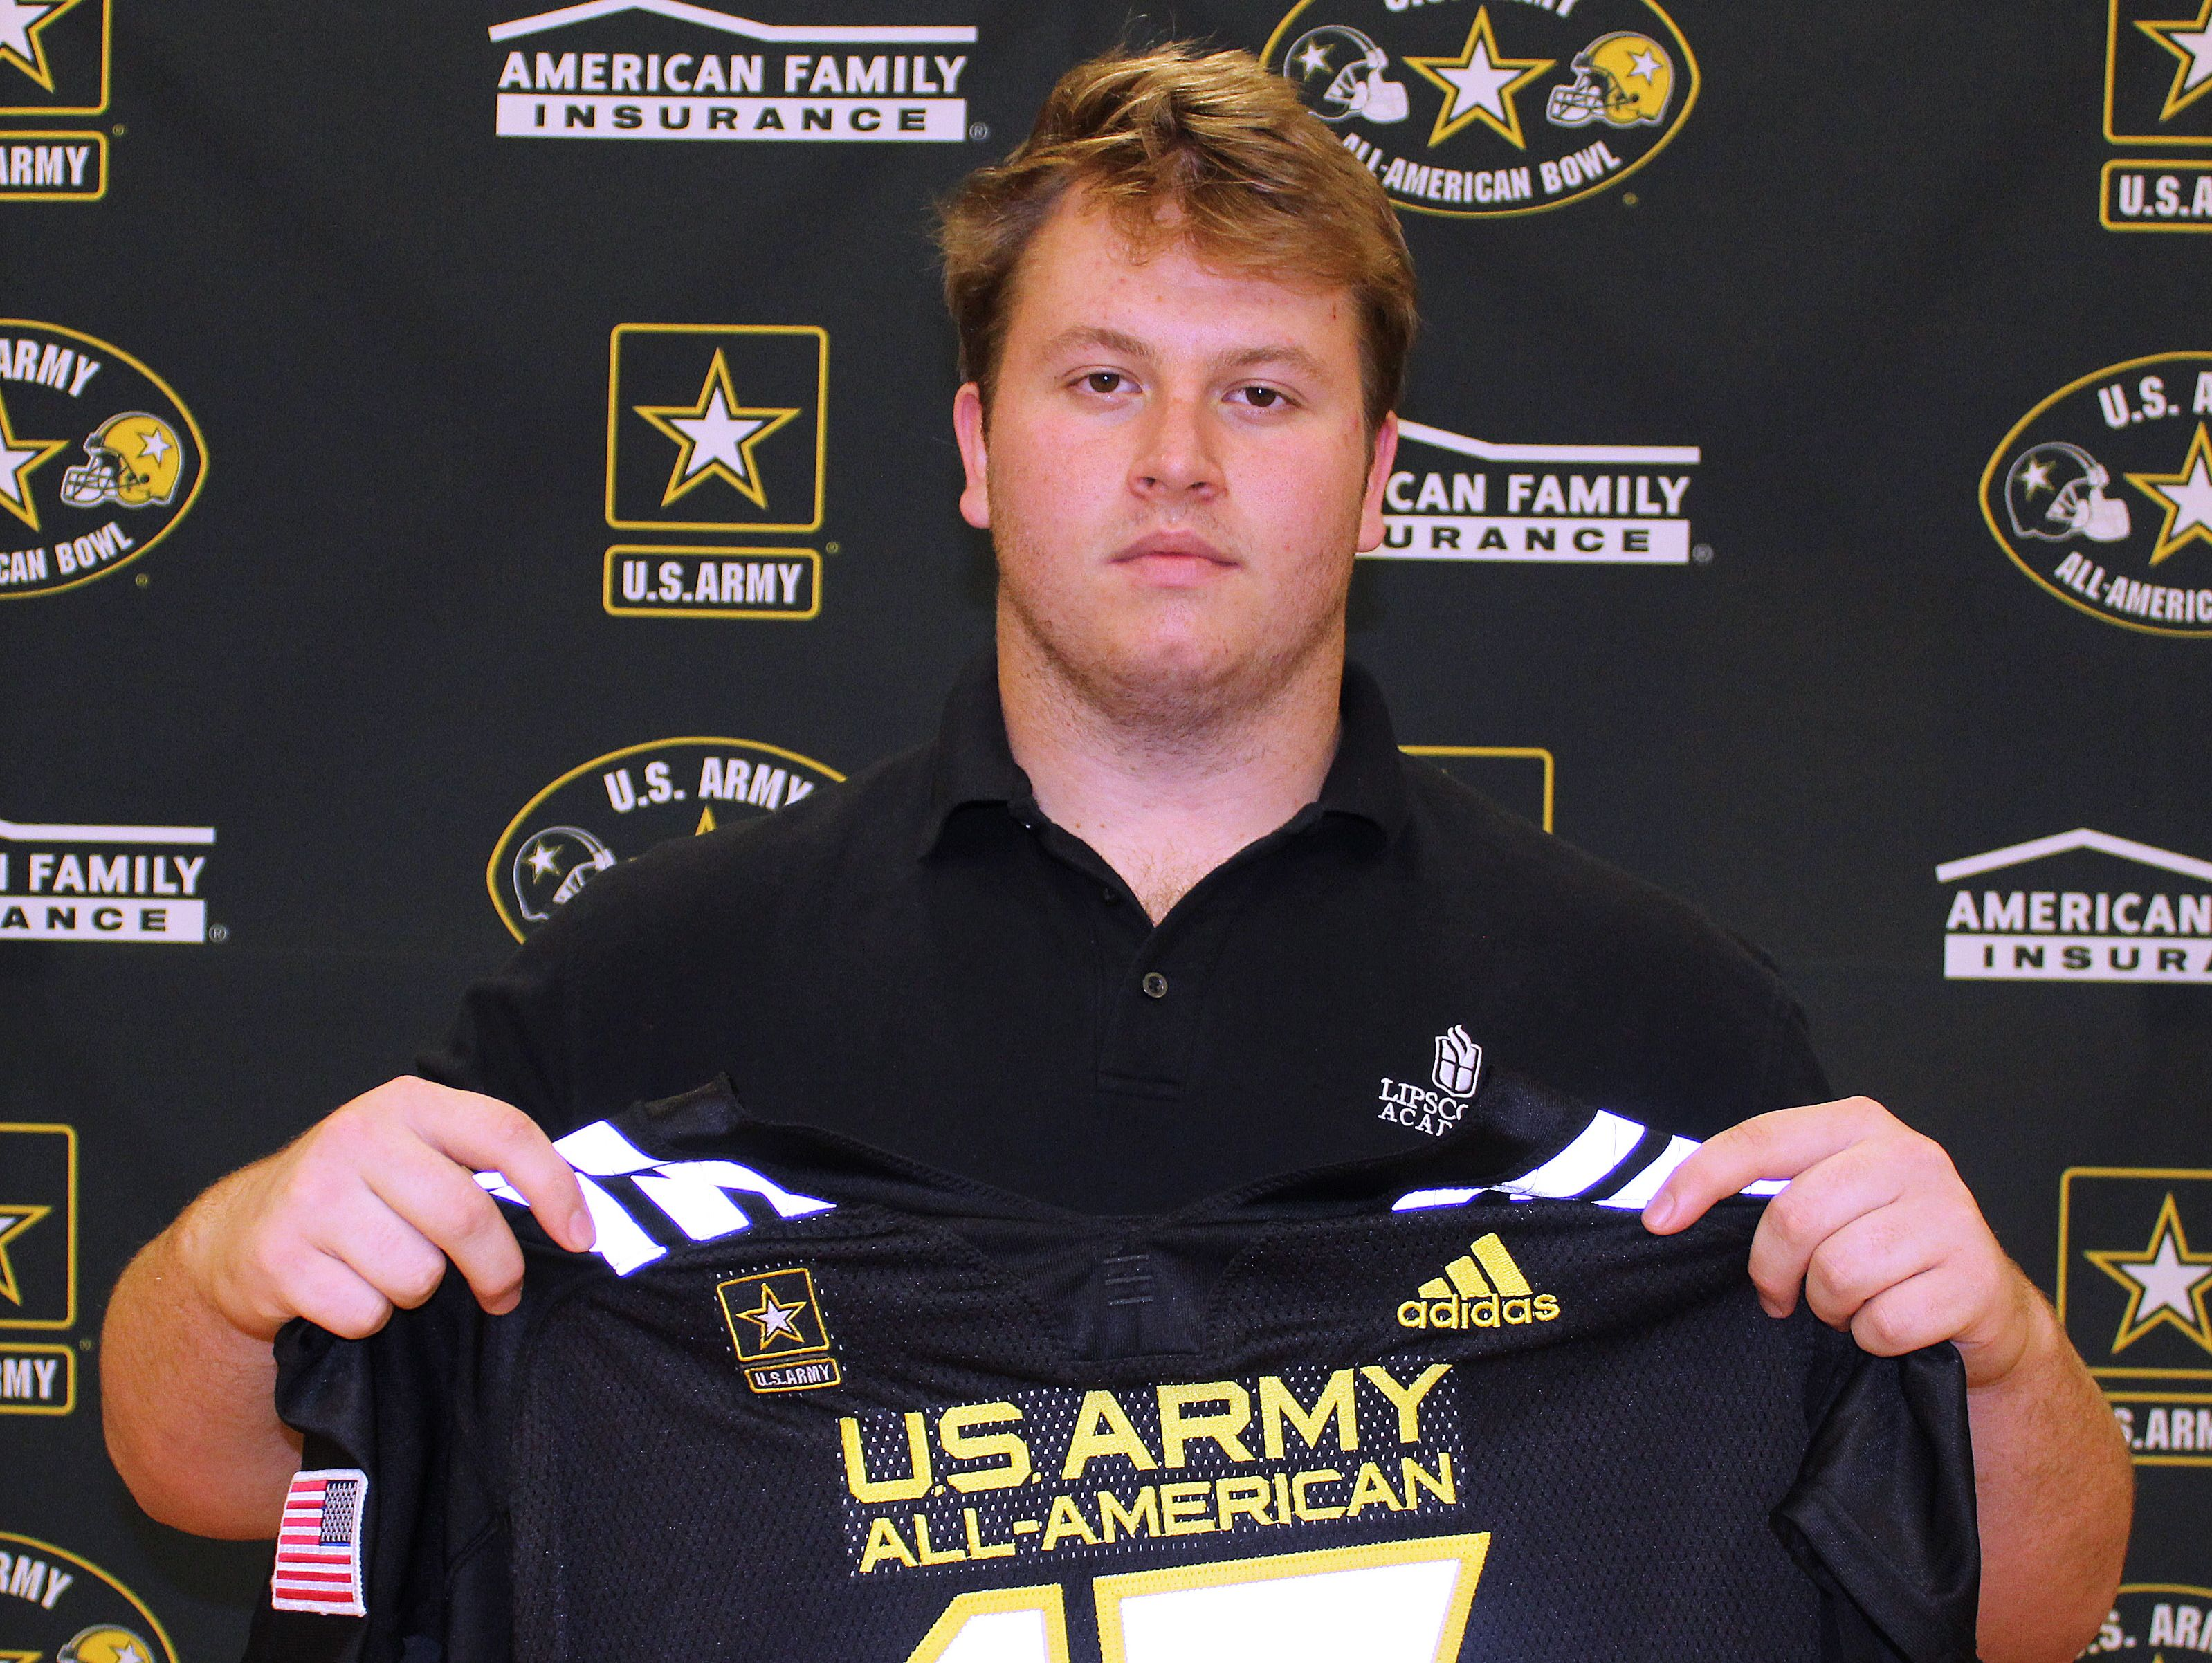 Lipscomb Academy senior Rutger Reitmaier received an honorary jersey for the U.S. Army All-American Bowl on Friday.